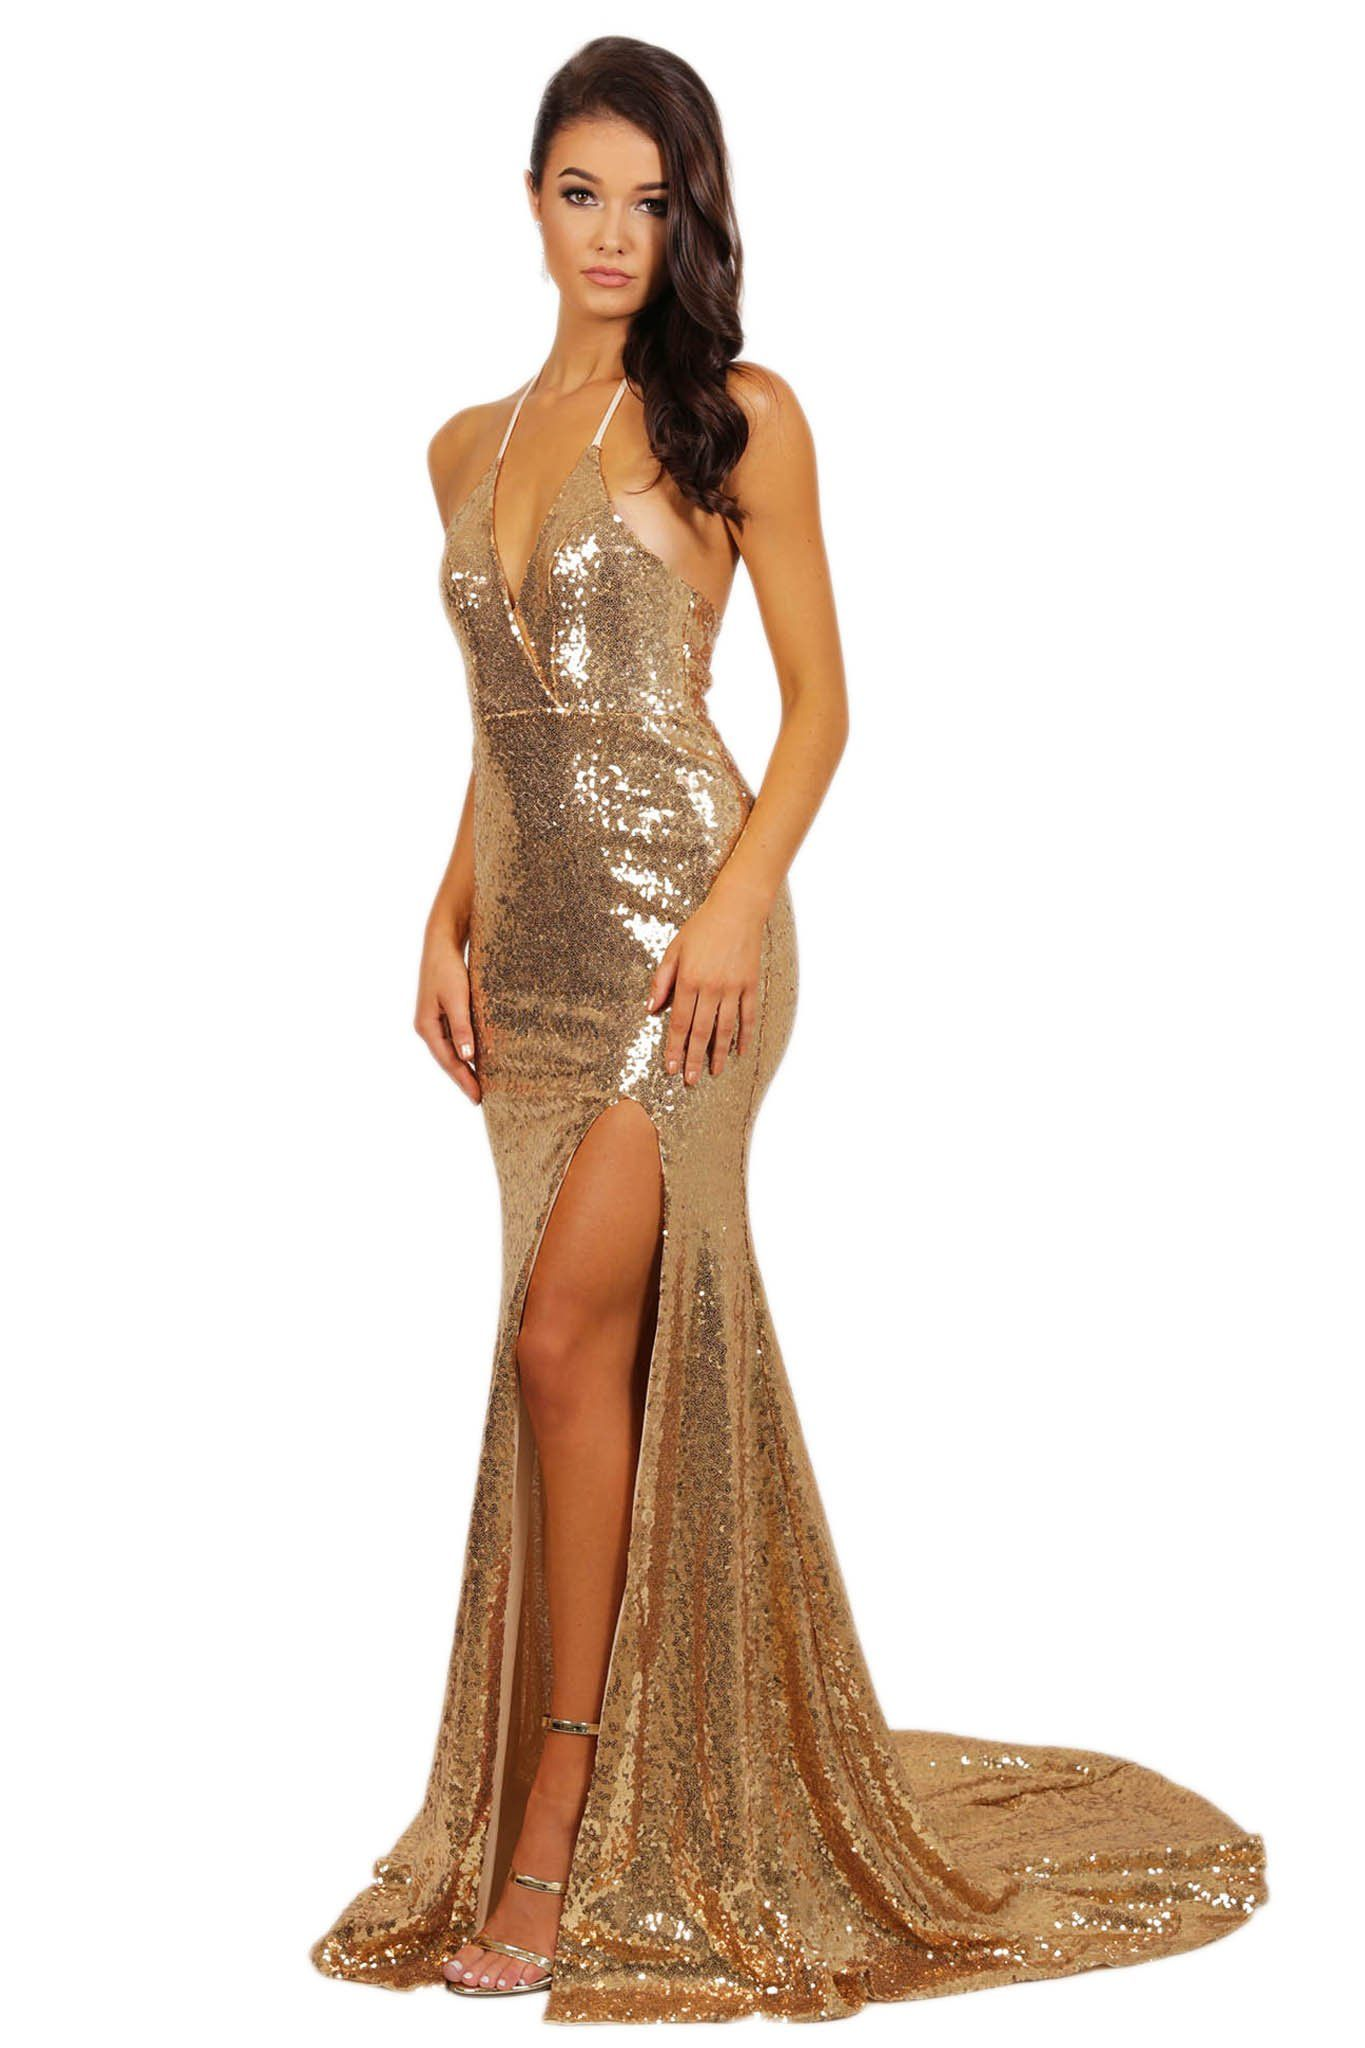 Estellina Front Slit Sequin Gown - Gold – Noodz Boutique